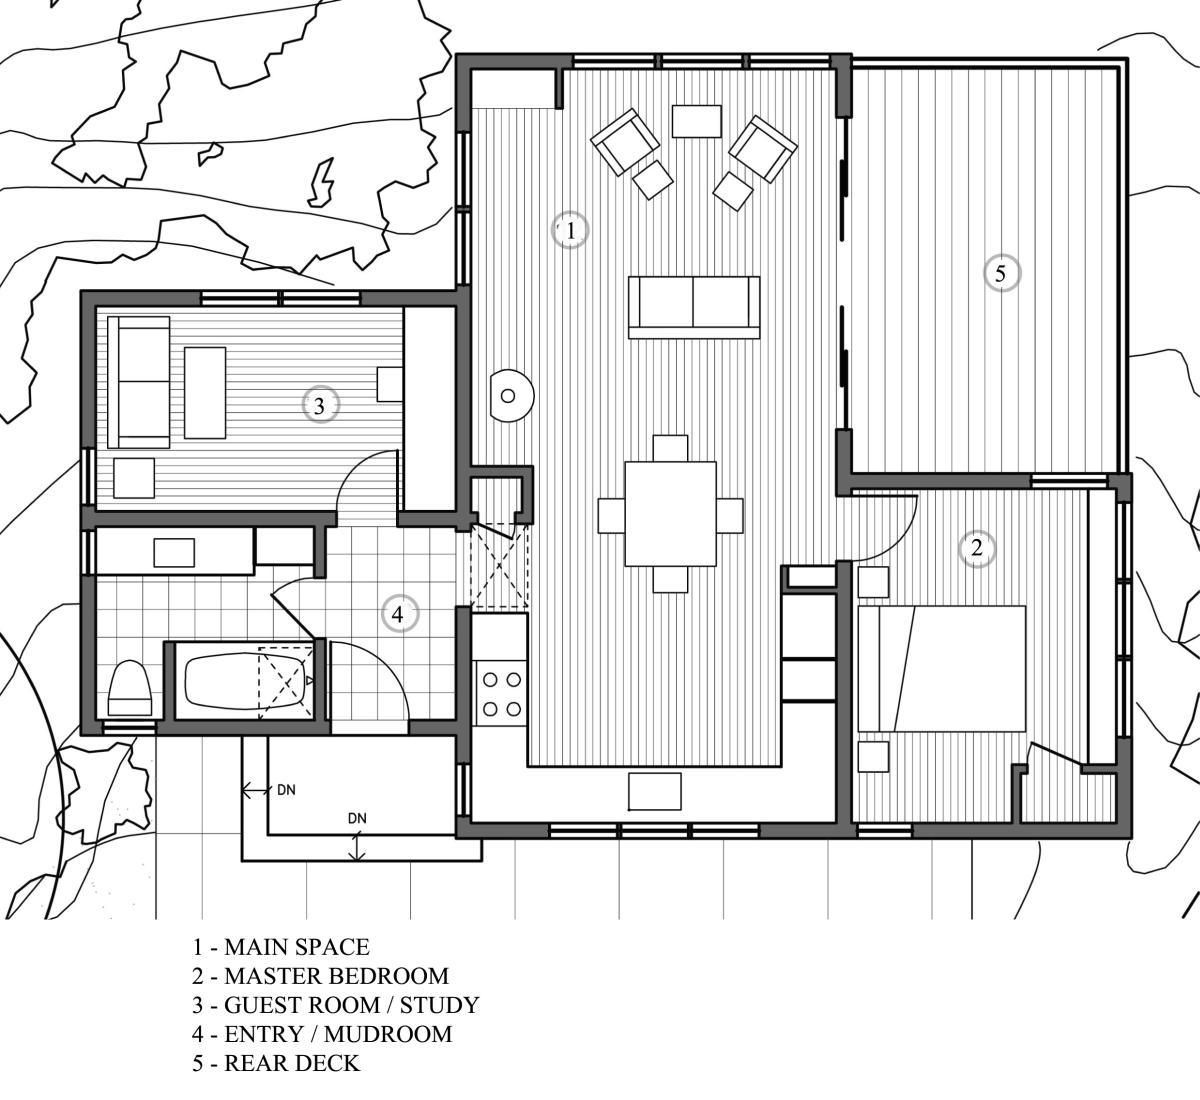 Small 2 Bedroom Cabin Plans A Woodsy Cottage By Architect Cathy Schwabe With 2 Bedrooms In 840